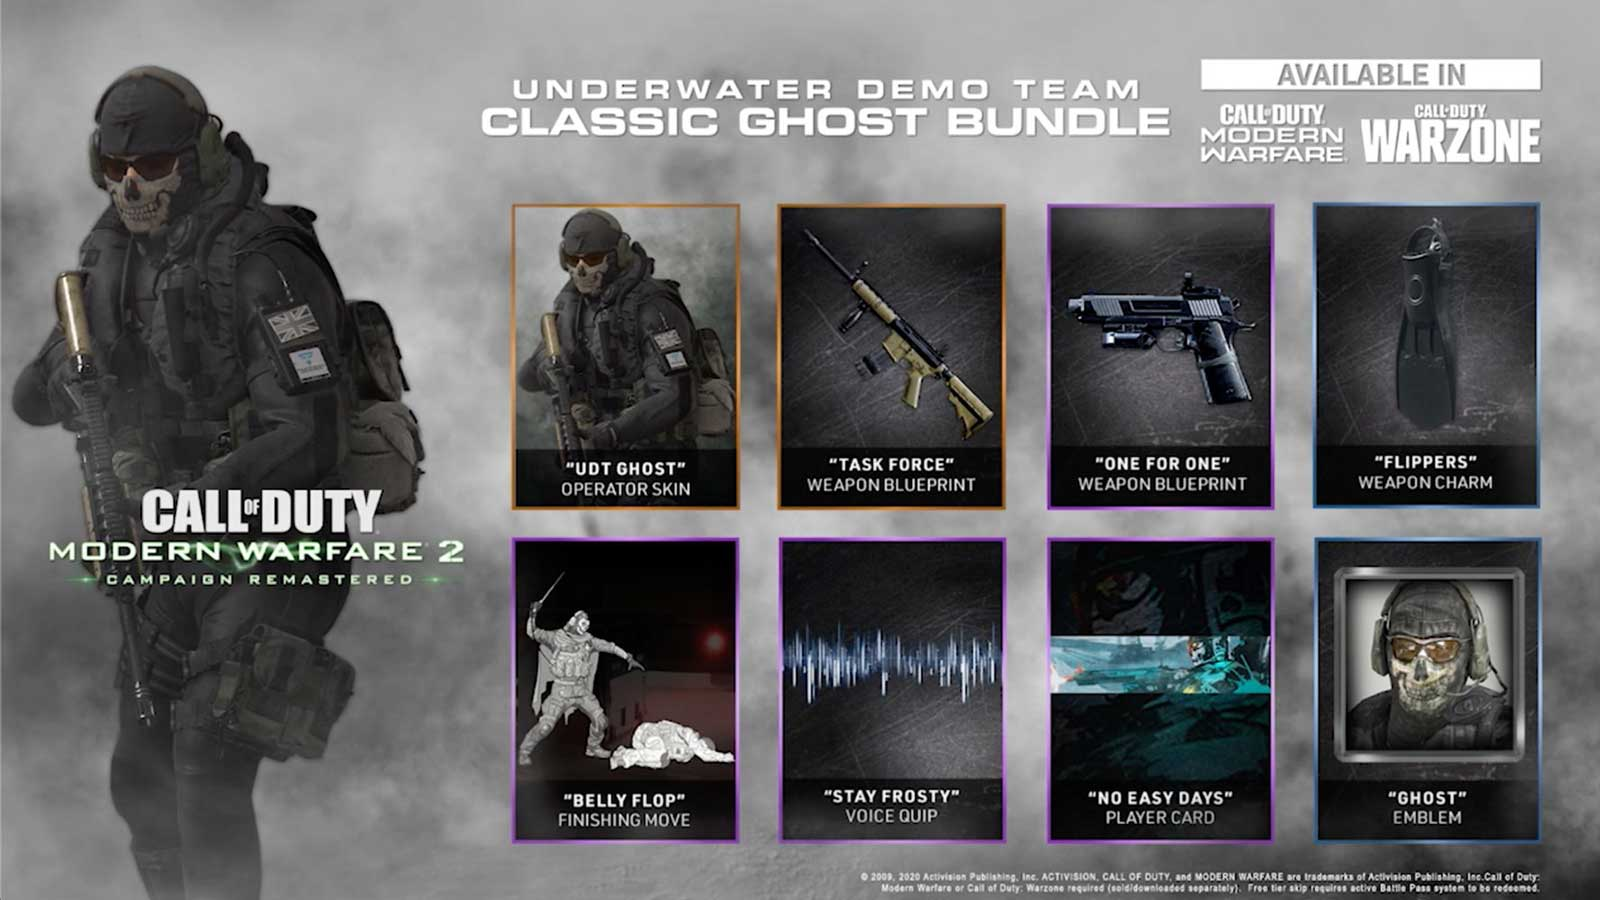 underwater demo team classic ghost bundle babt